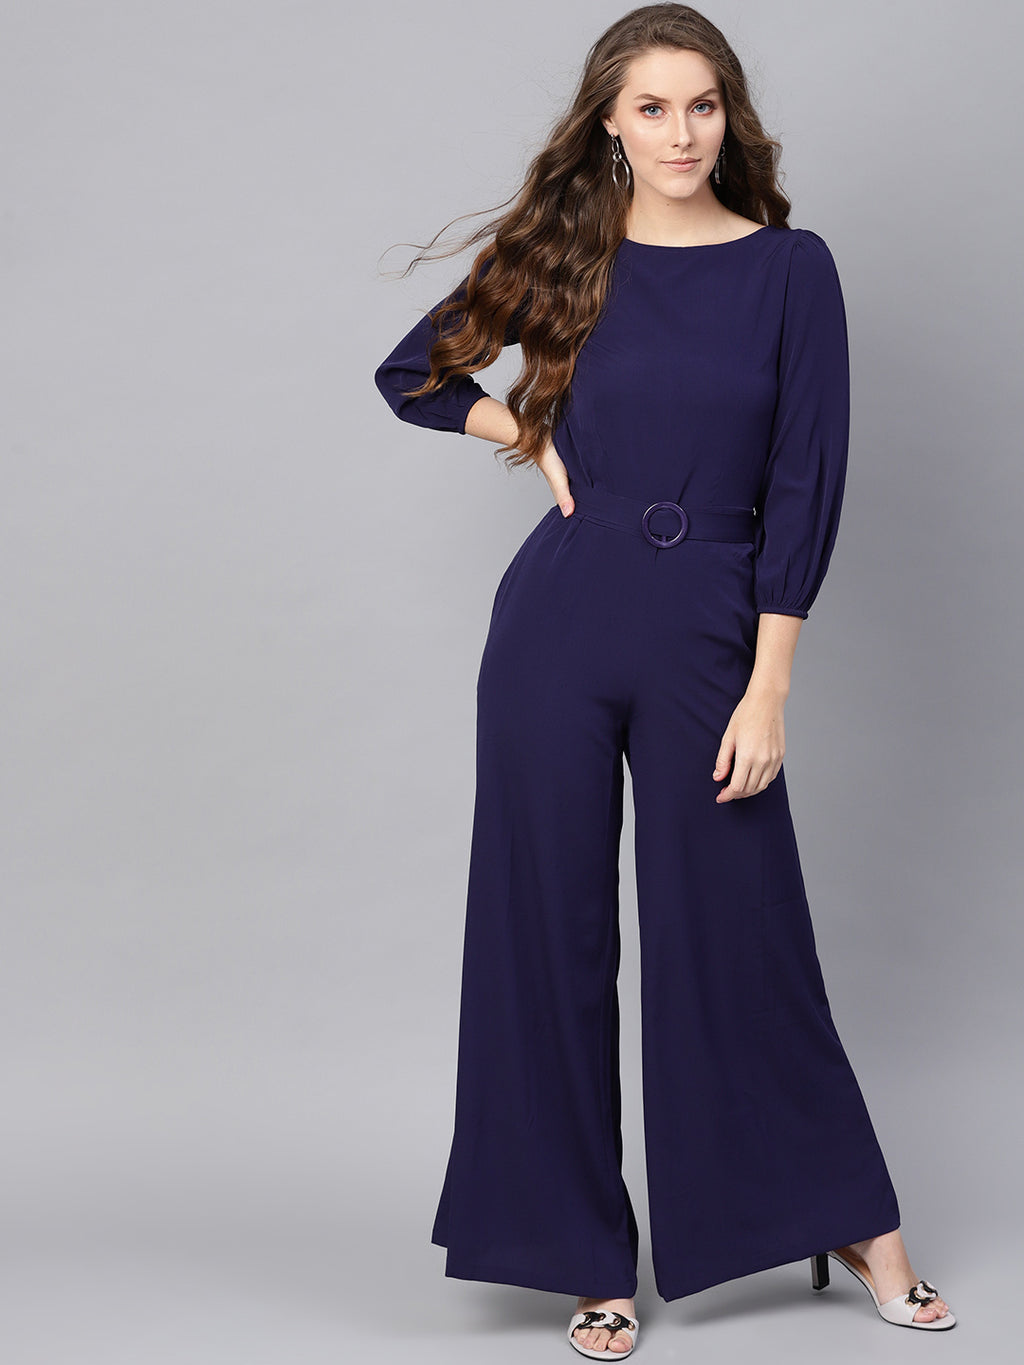 SASSAFRAS -  Women Navy Blue Solid Basic Jumpsuit